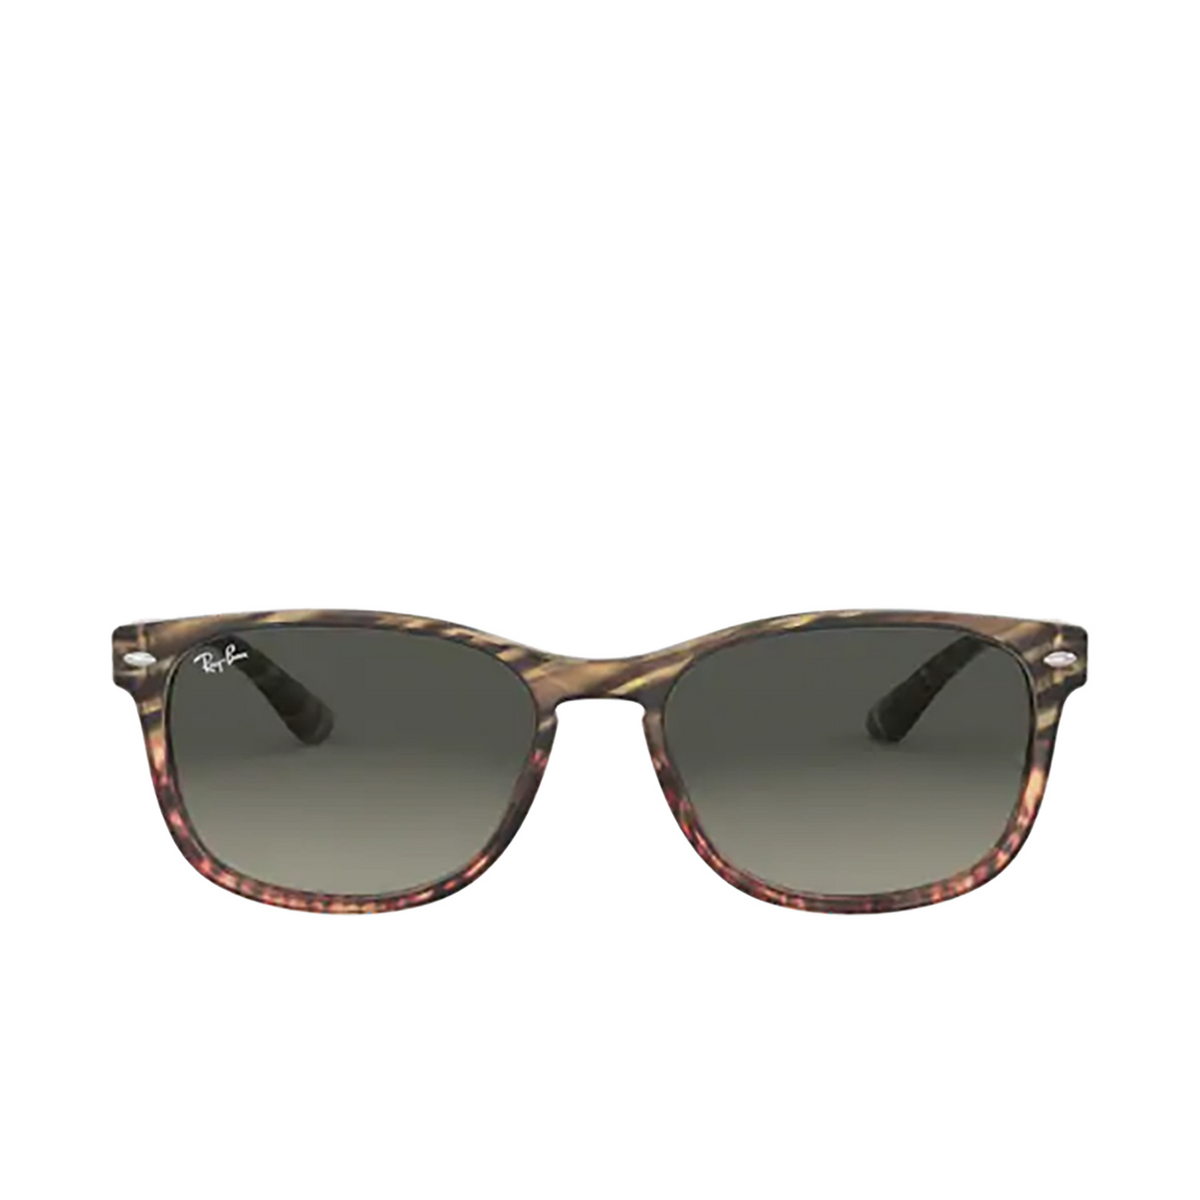 Ray-Ban® Square Sunglasses: RB2184 color Grey Gradient Brown Striped 125471 - 1/3.